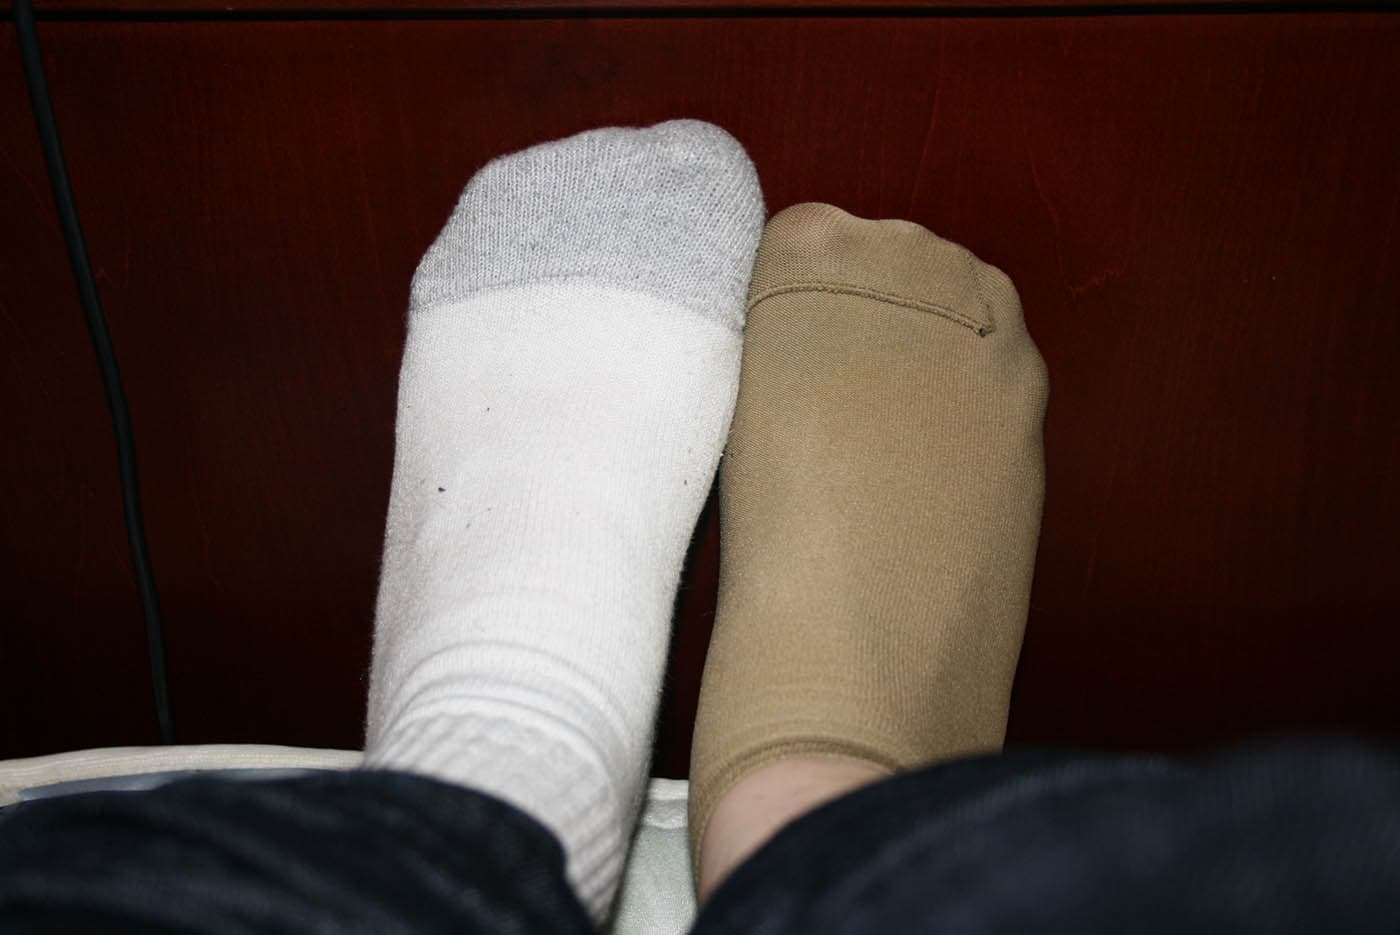 Accidentally wearing two different types of socks.